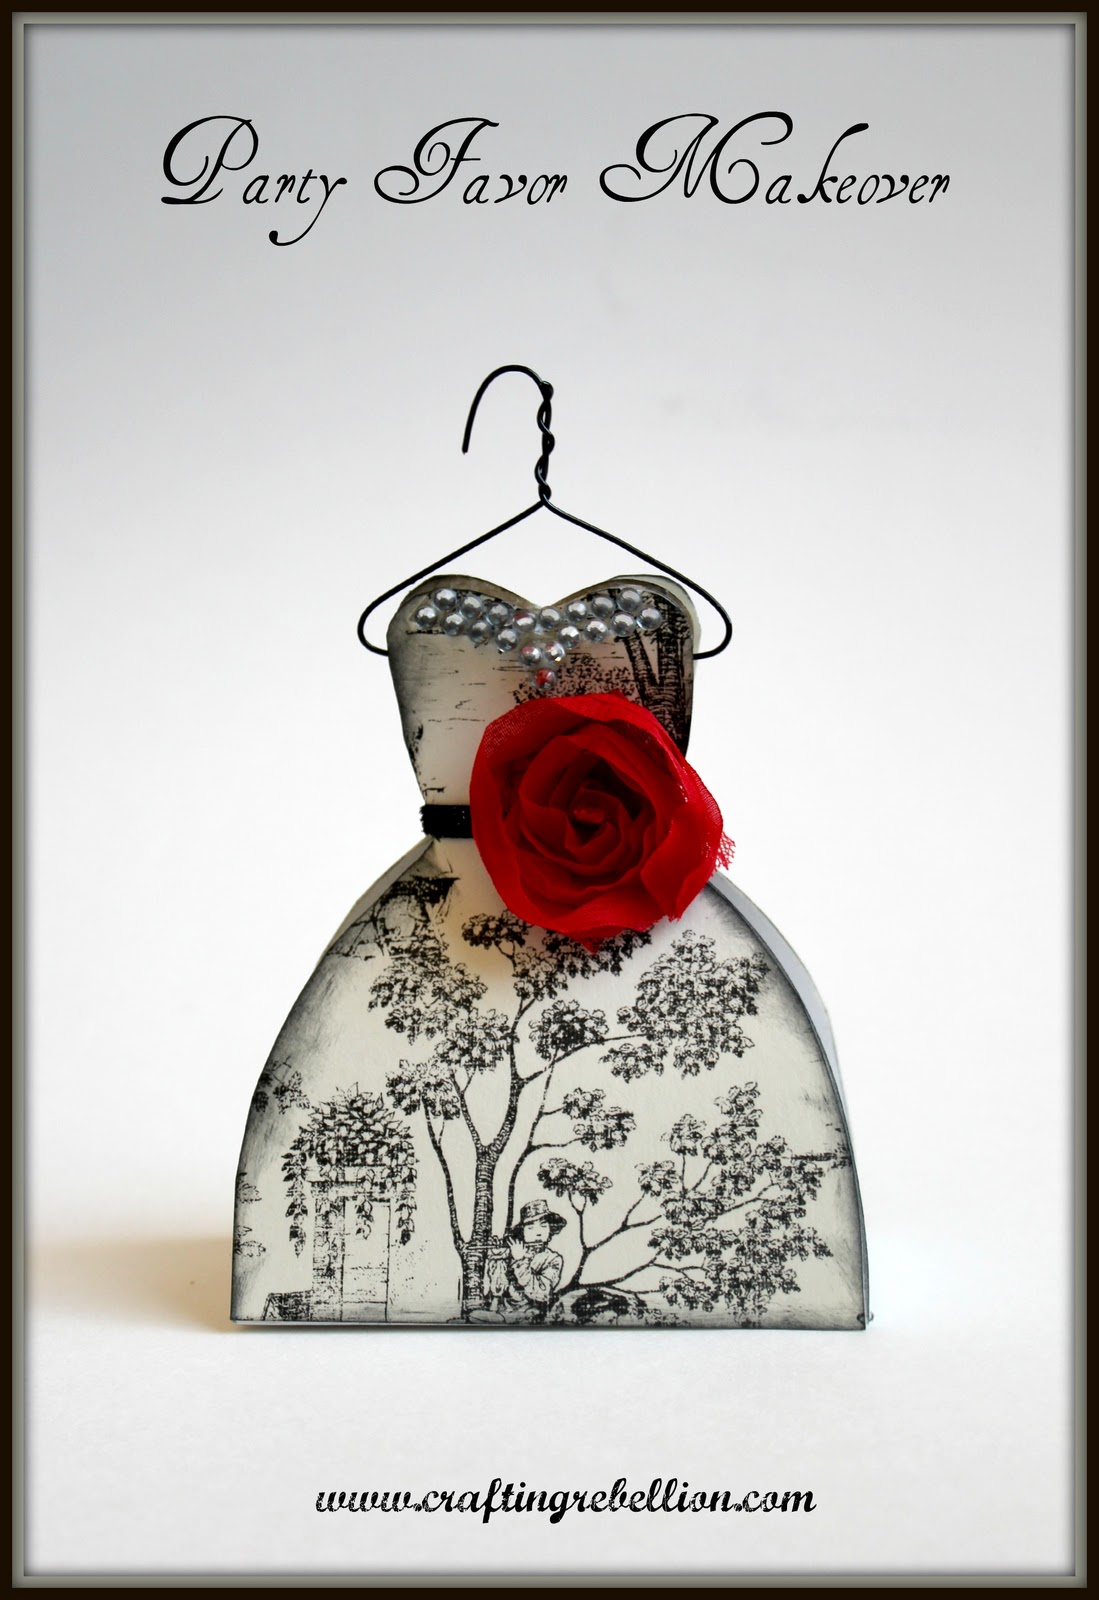 Wedding Gown Favor Boxes: Ivory gown favor boxes hortense b hewitt the.